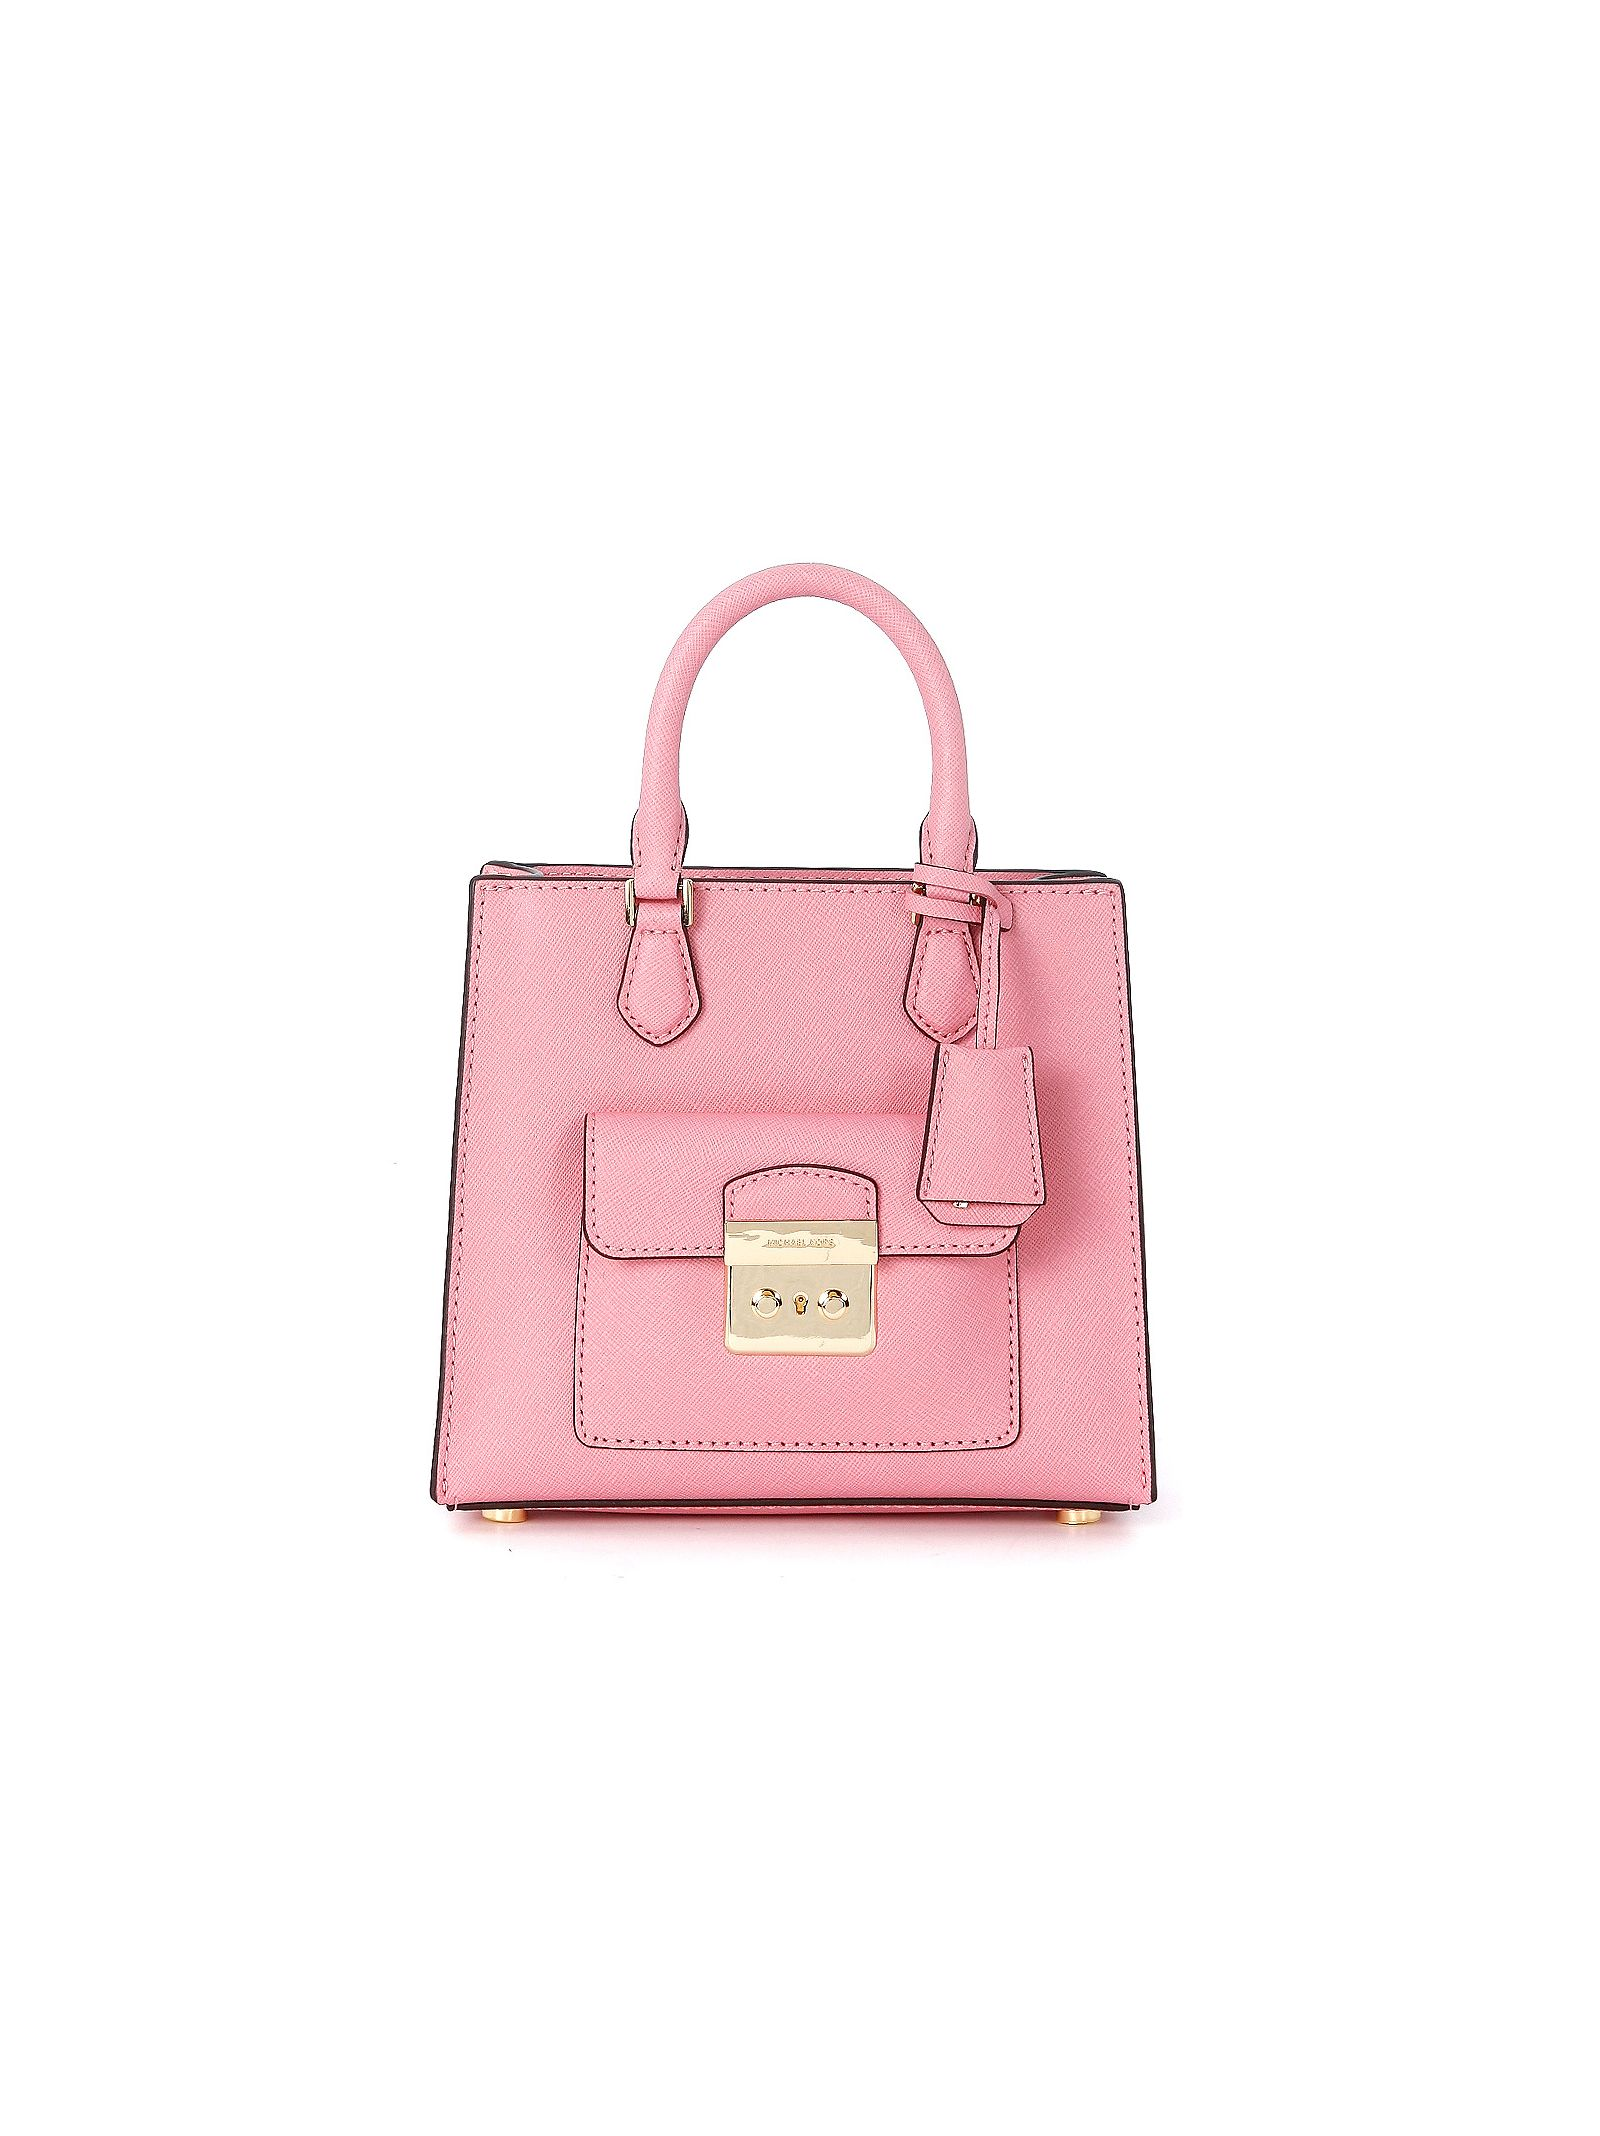 michael kors female  michael kors bridgette pink leather handbag